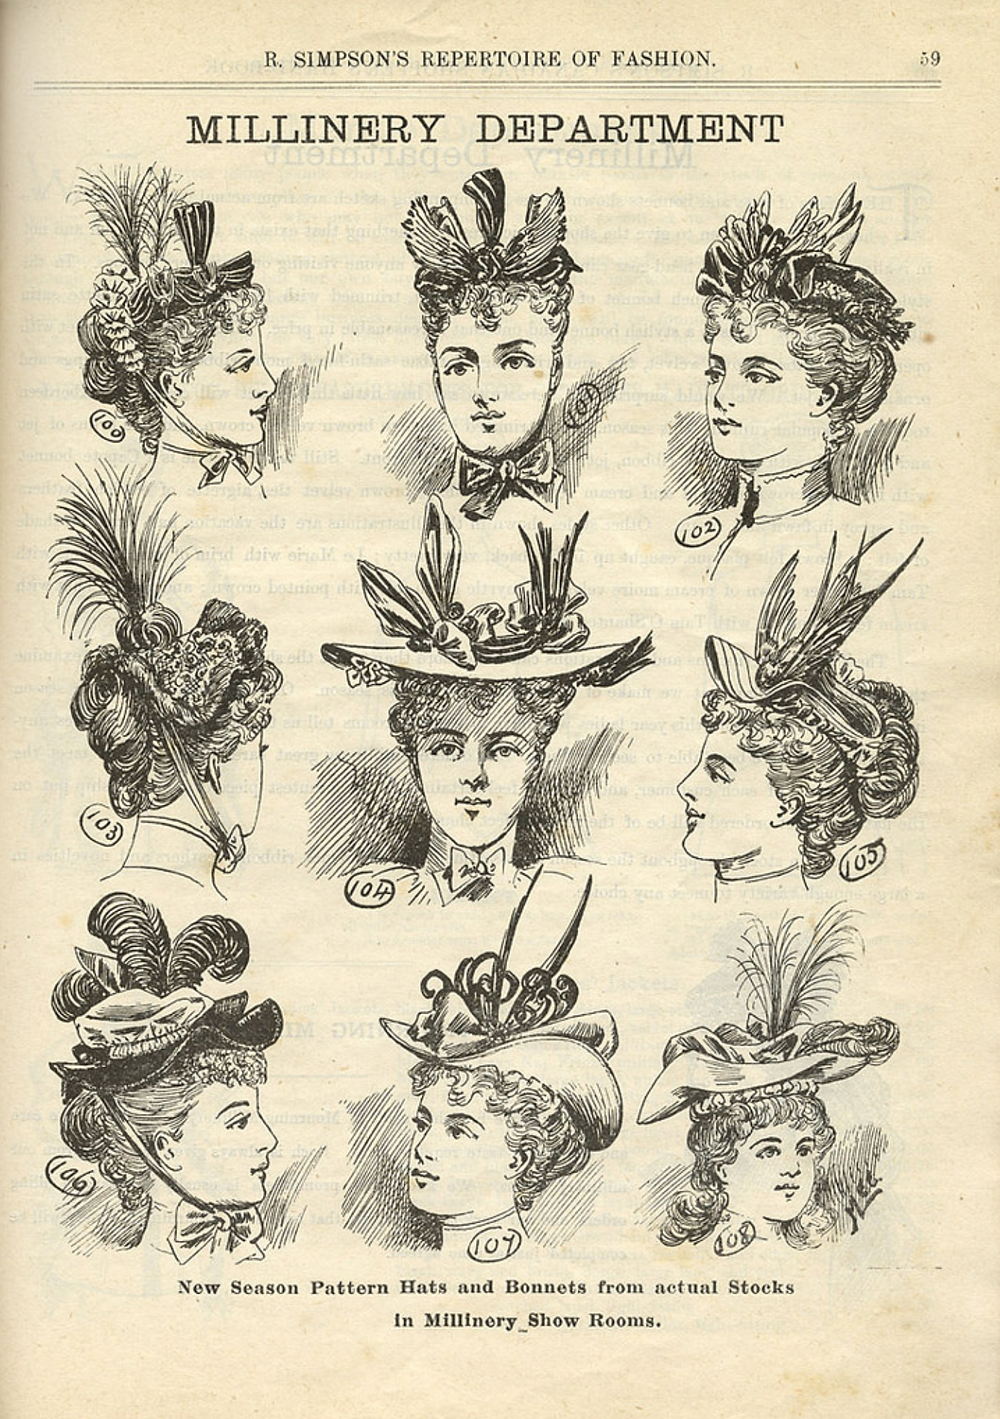 Advertisement for the Millinery department of Simpsons department store.